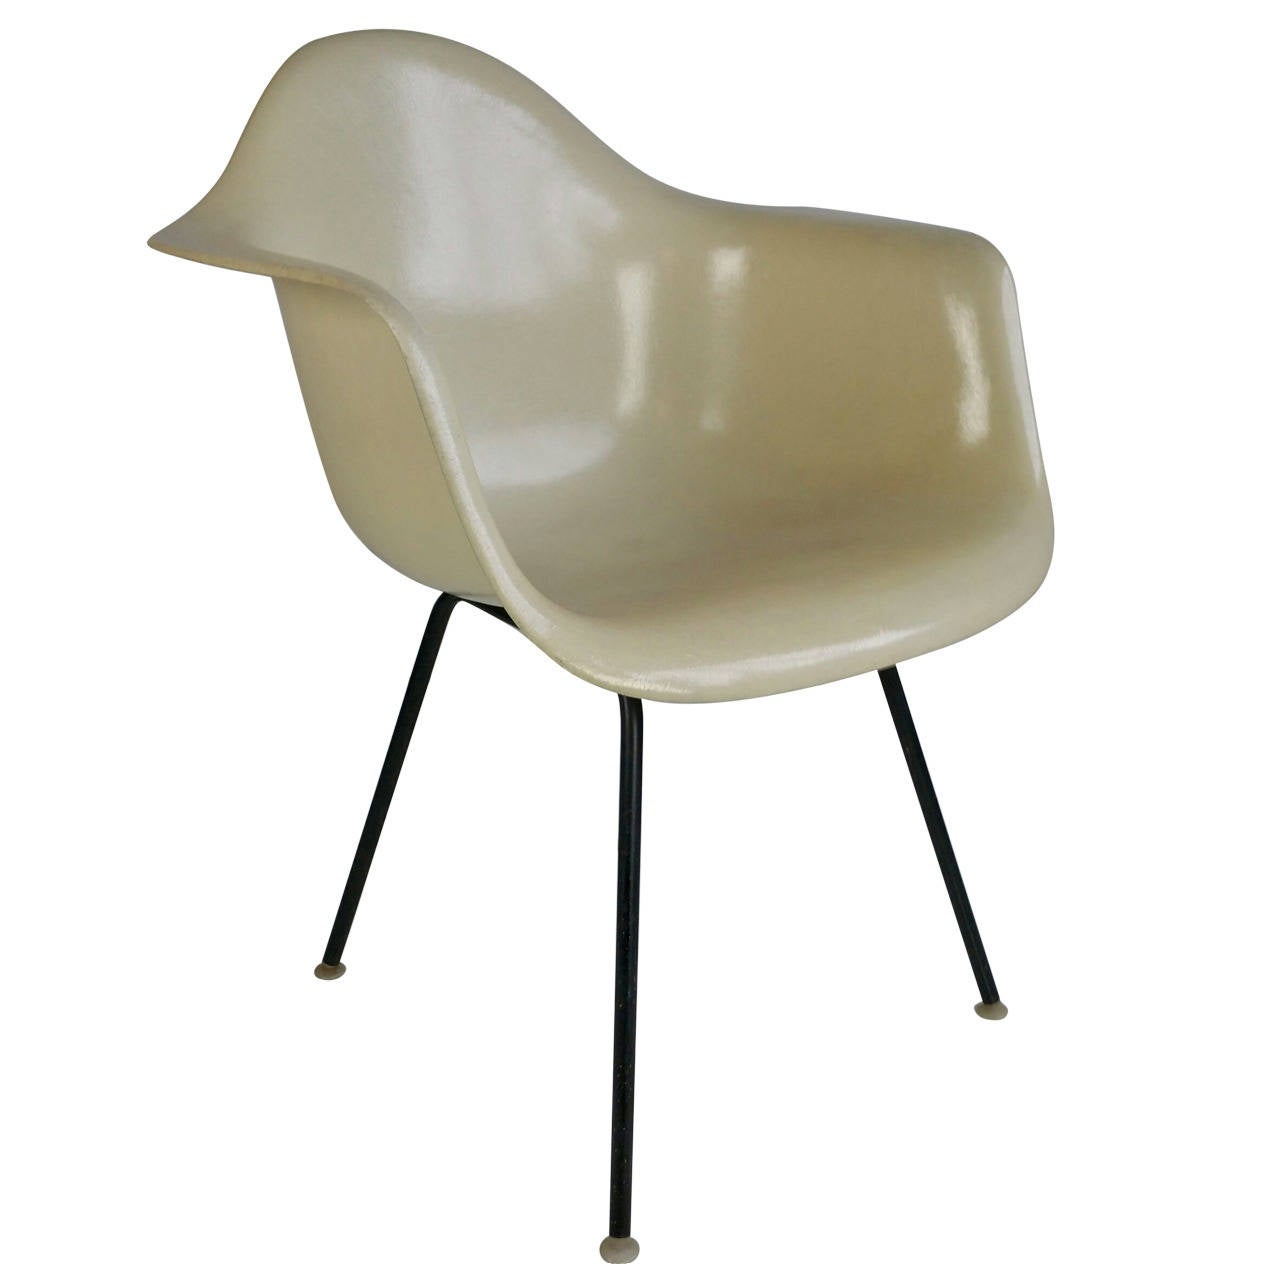 Herman Miller Eames Chairs Charles Eames Parchment Arm Shell Chair Herman Miller For